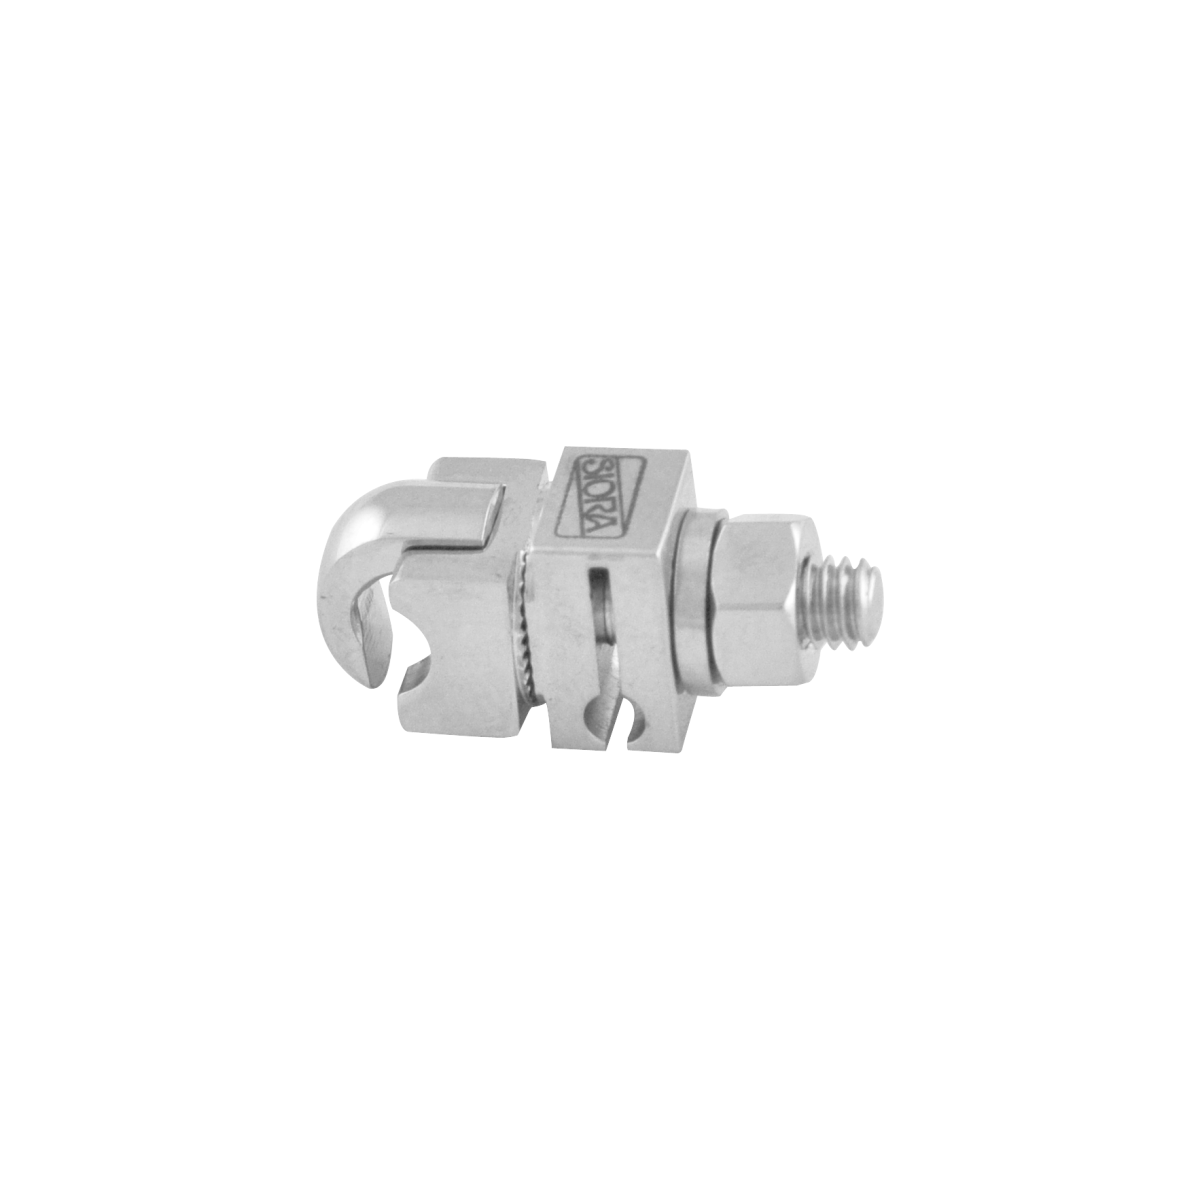 Open Small Single Pin Clamp 4.0mm x 2.5mm